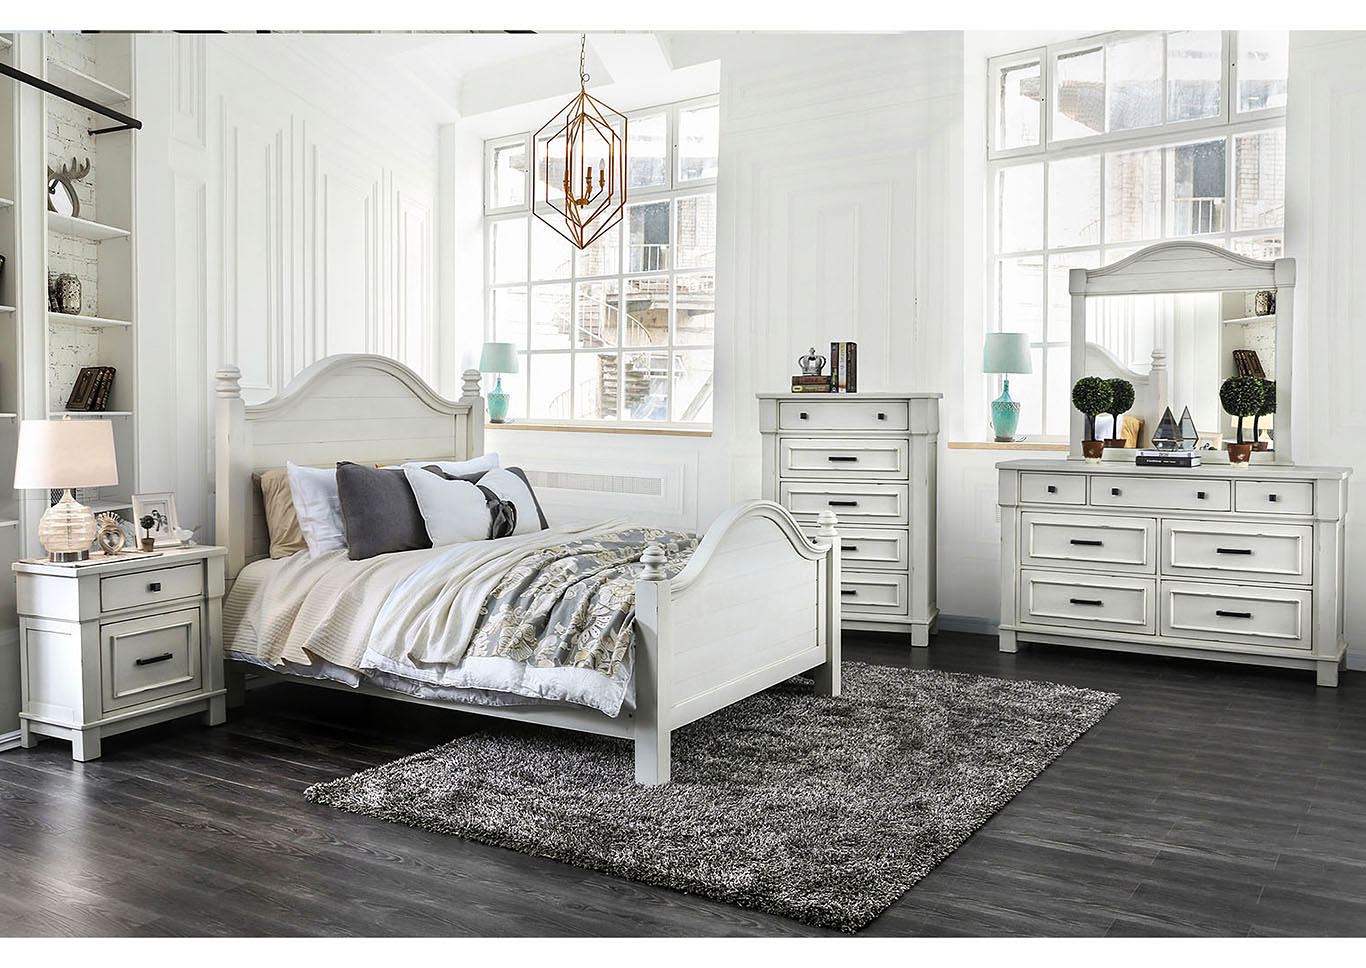 Daria Antique White Camelback California King Panel Bed w/Dresser and Mirror,Furniture of America